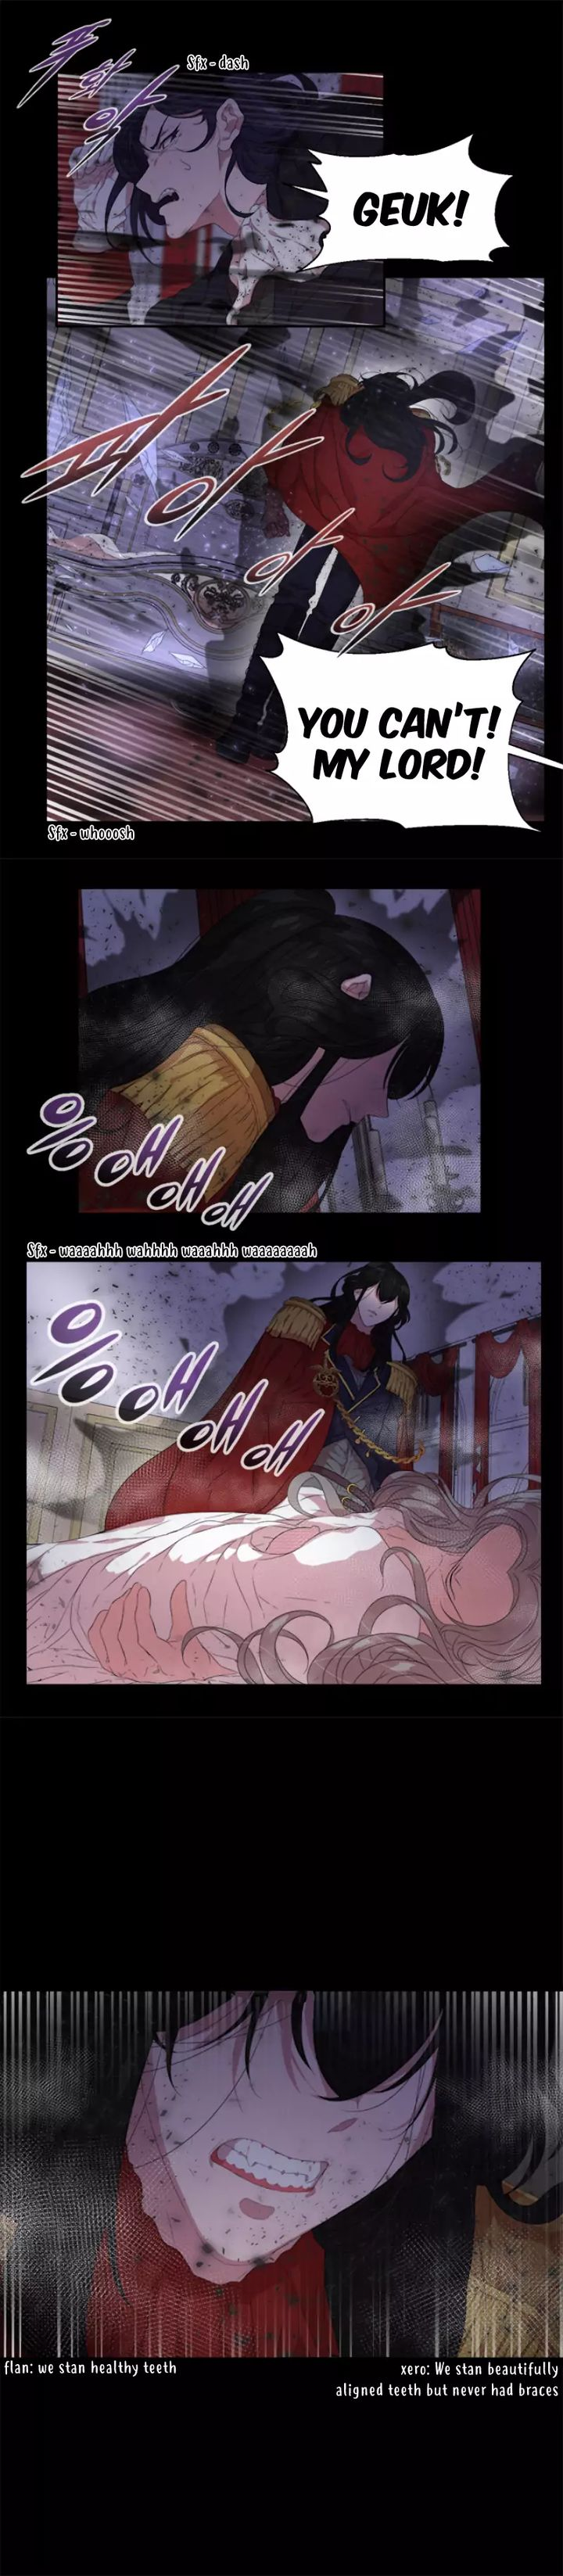 i_was_born_as_the_demon_lords_daughter_2_8